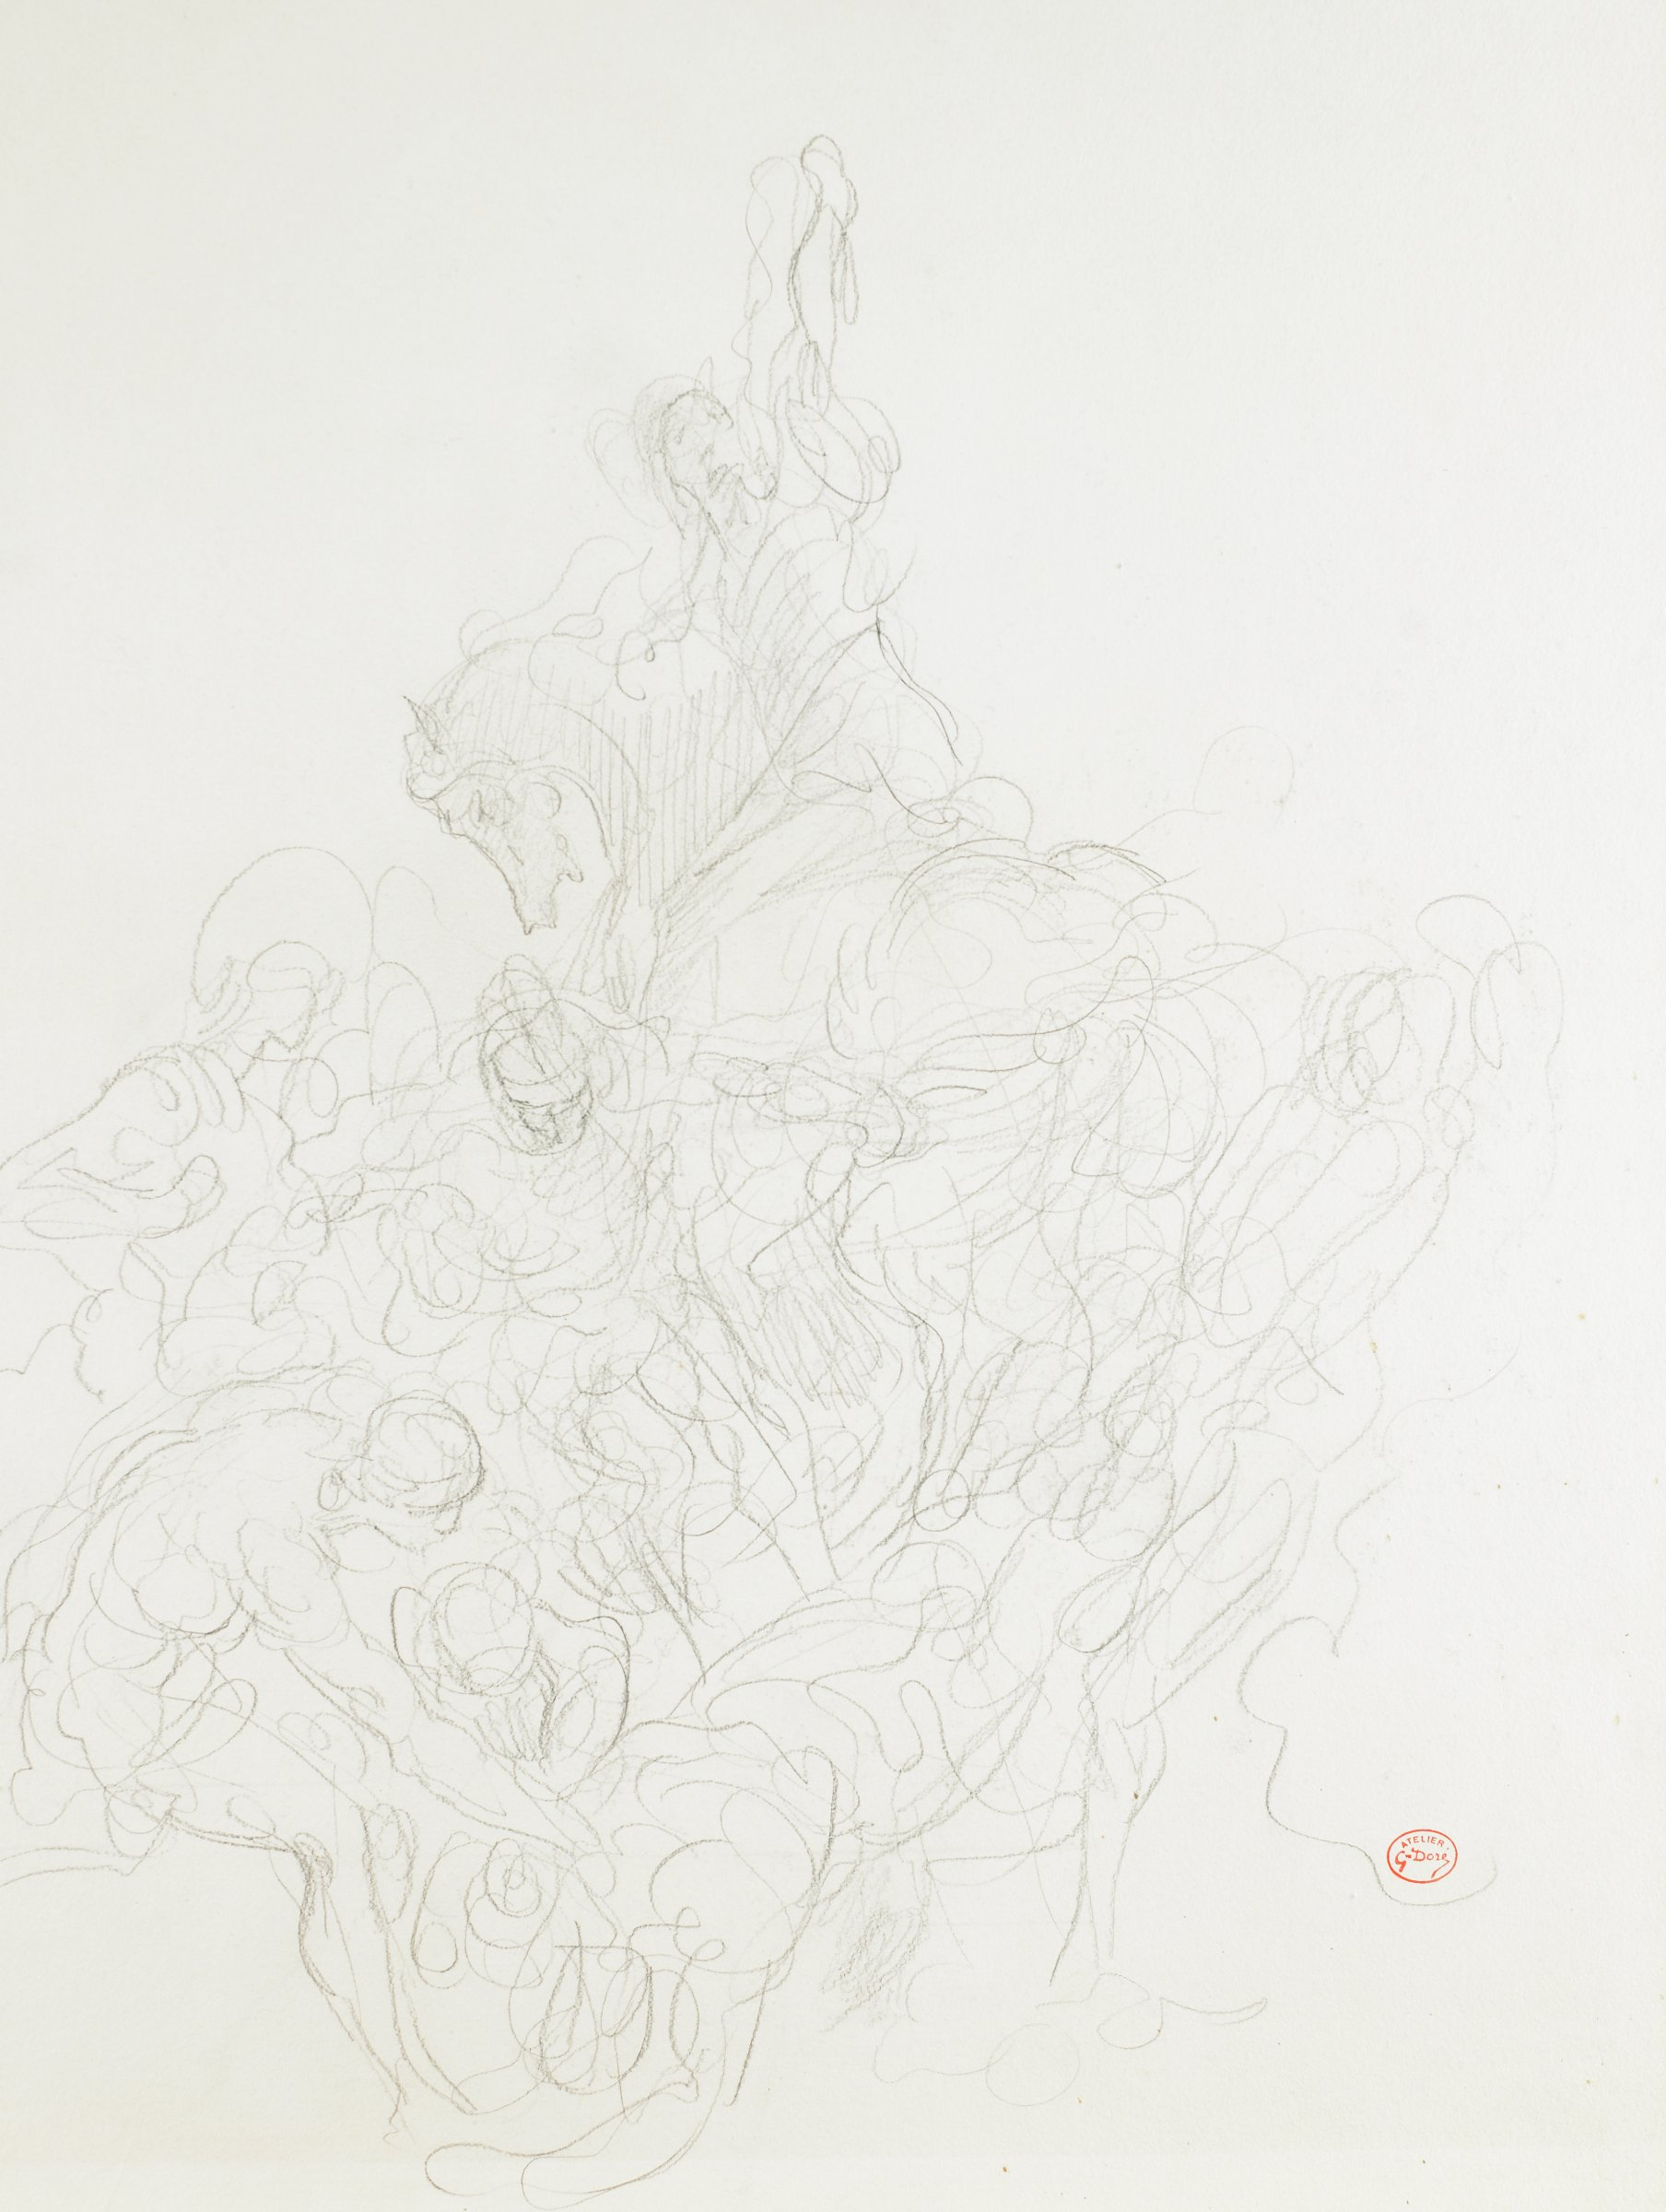 At the top of the composition is a figure on horseback. The figure turns sideways and raises his or her arm upwards. Beneath this is a series of swirling lines. A defined figure is seen in the lower left bendind forward.